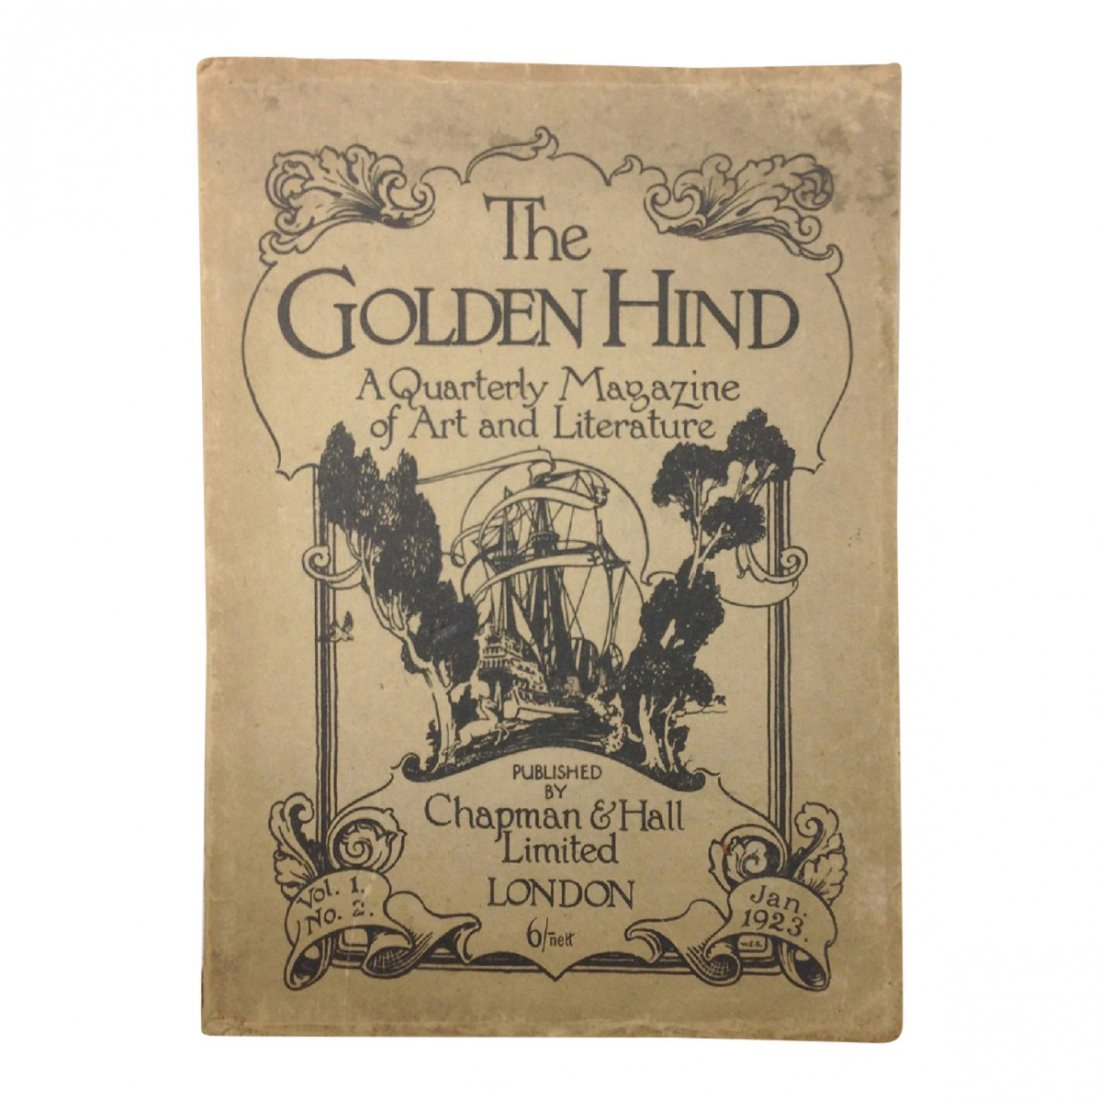 The Golden Hind Volume 1 No. 2